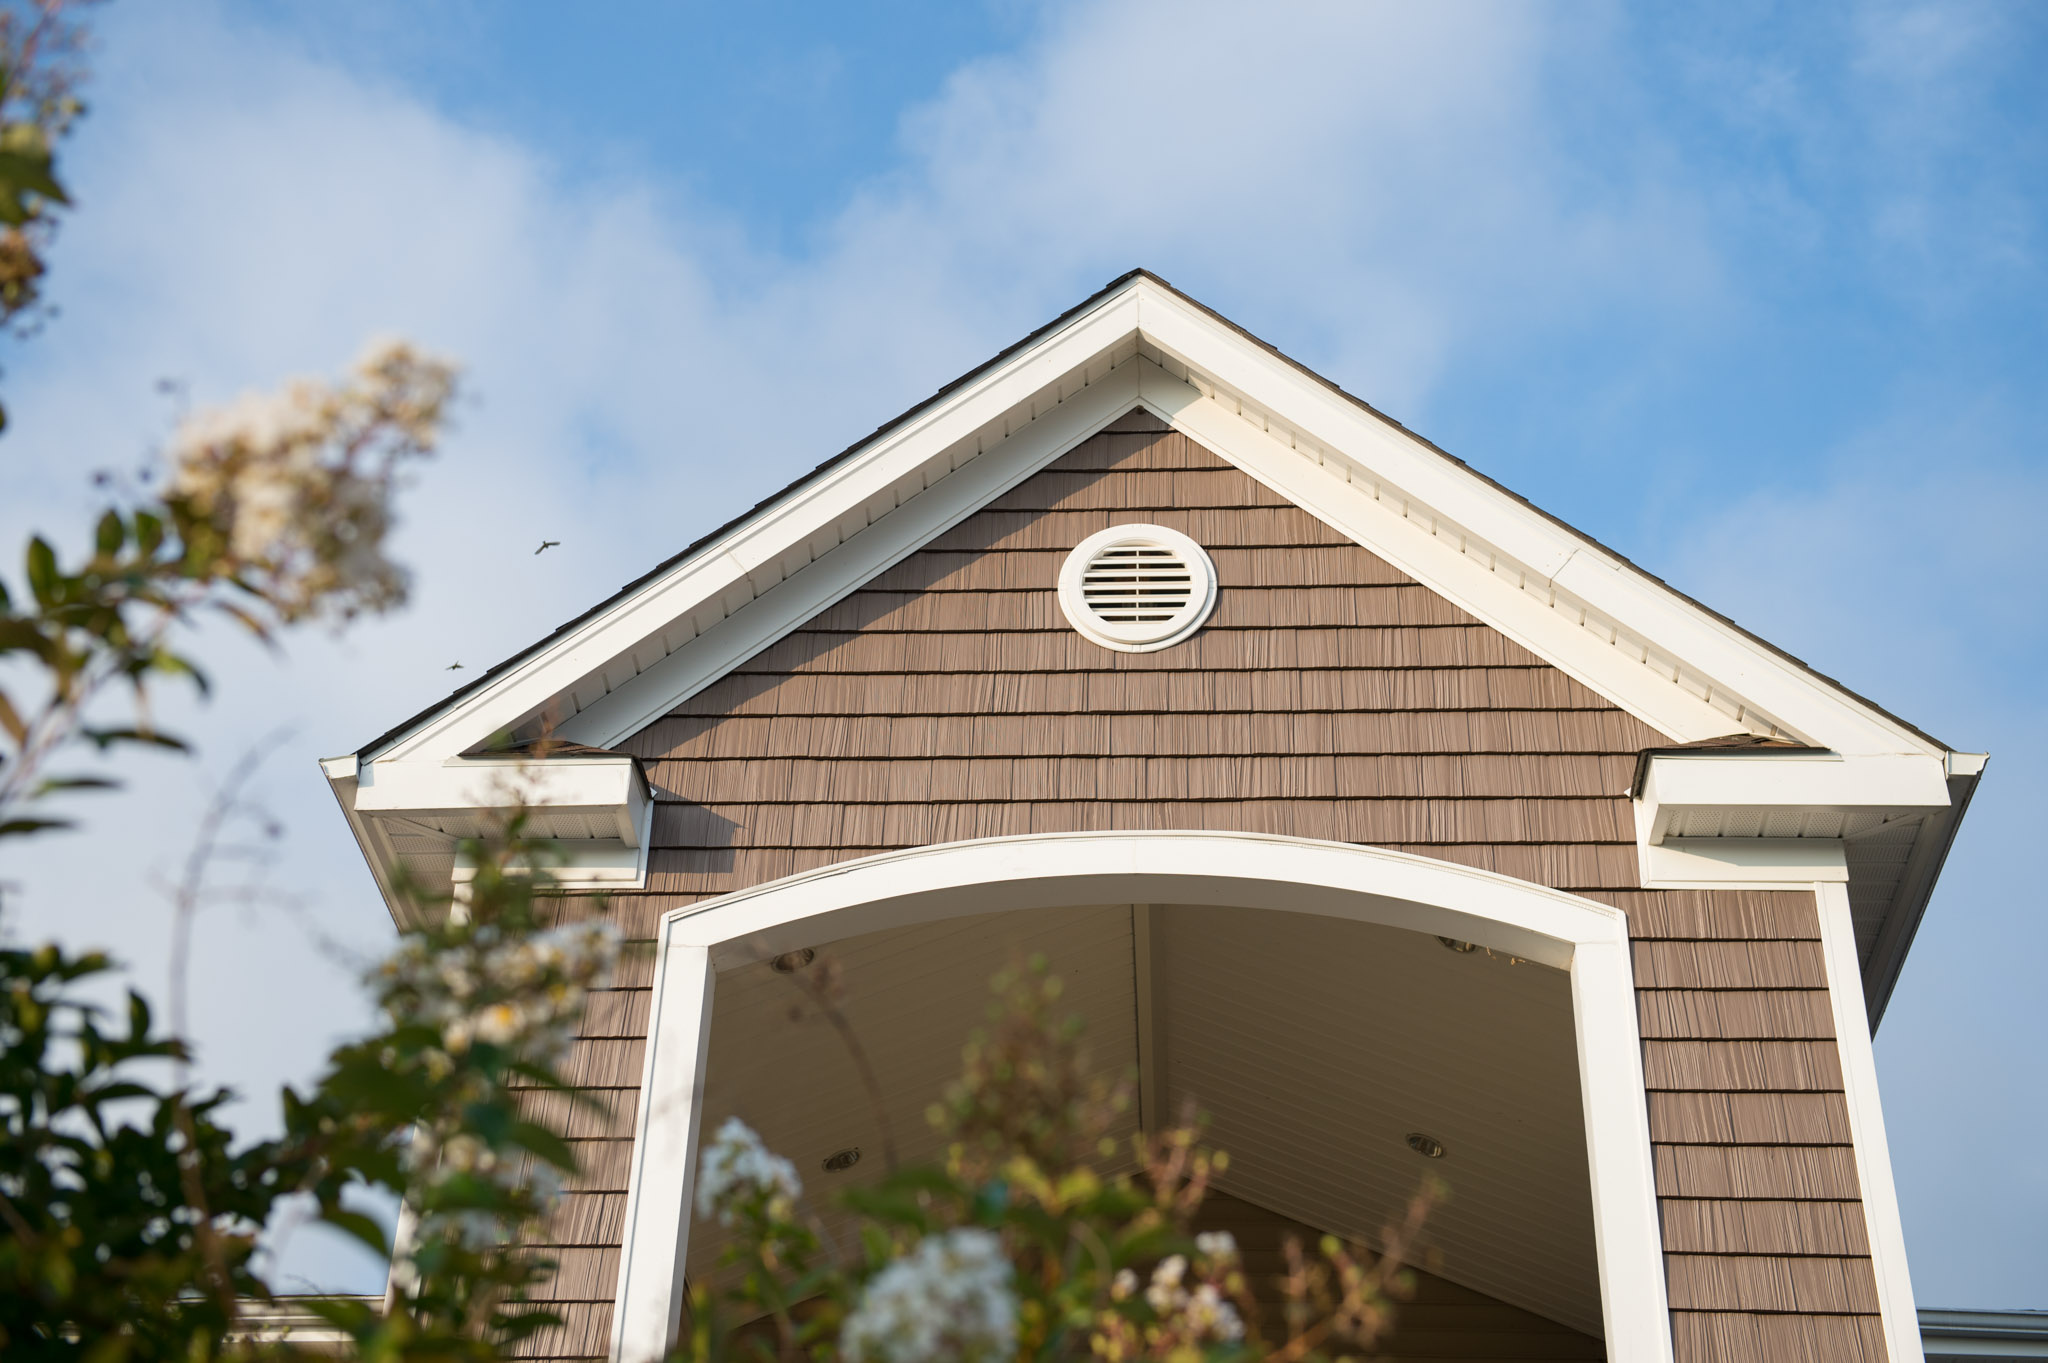 North 38 Exteriors for Web-1003.jpg